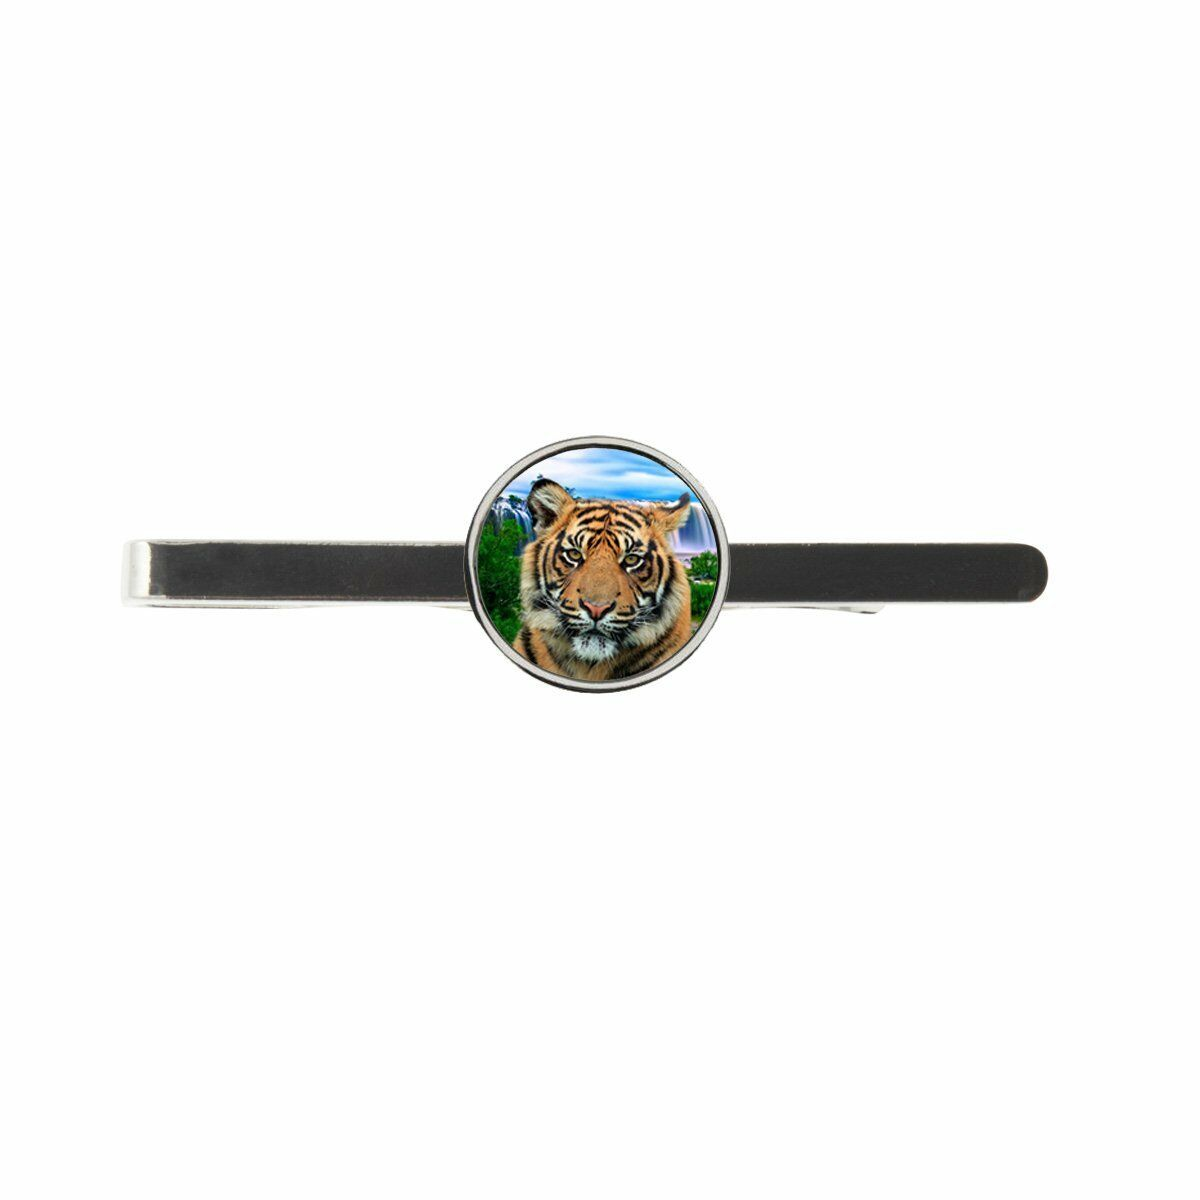 Tiger Waterfall Mens Tie Slide Ideal Birthday Wedding Father Day Gift C570